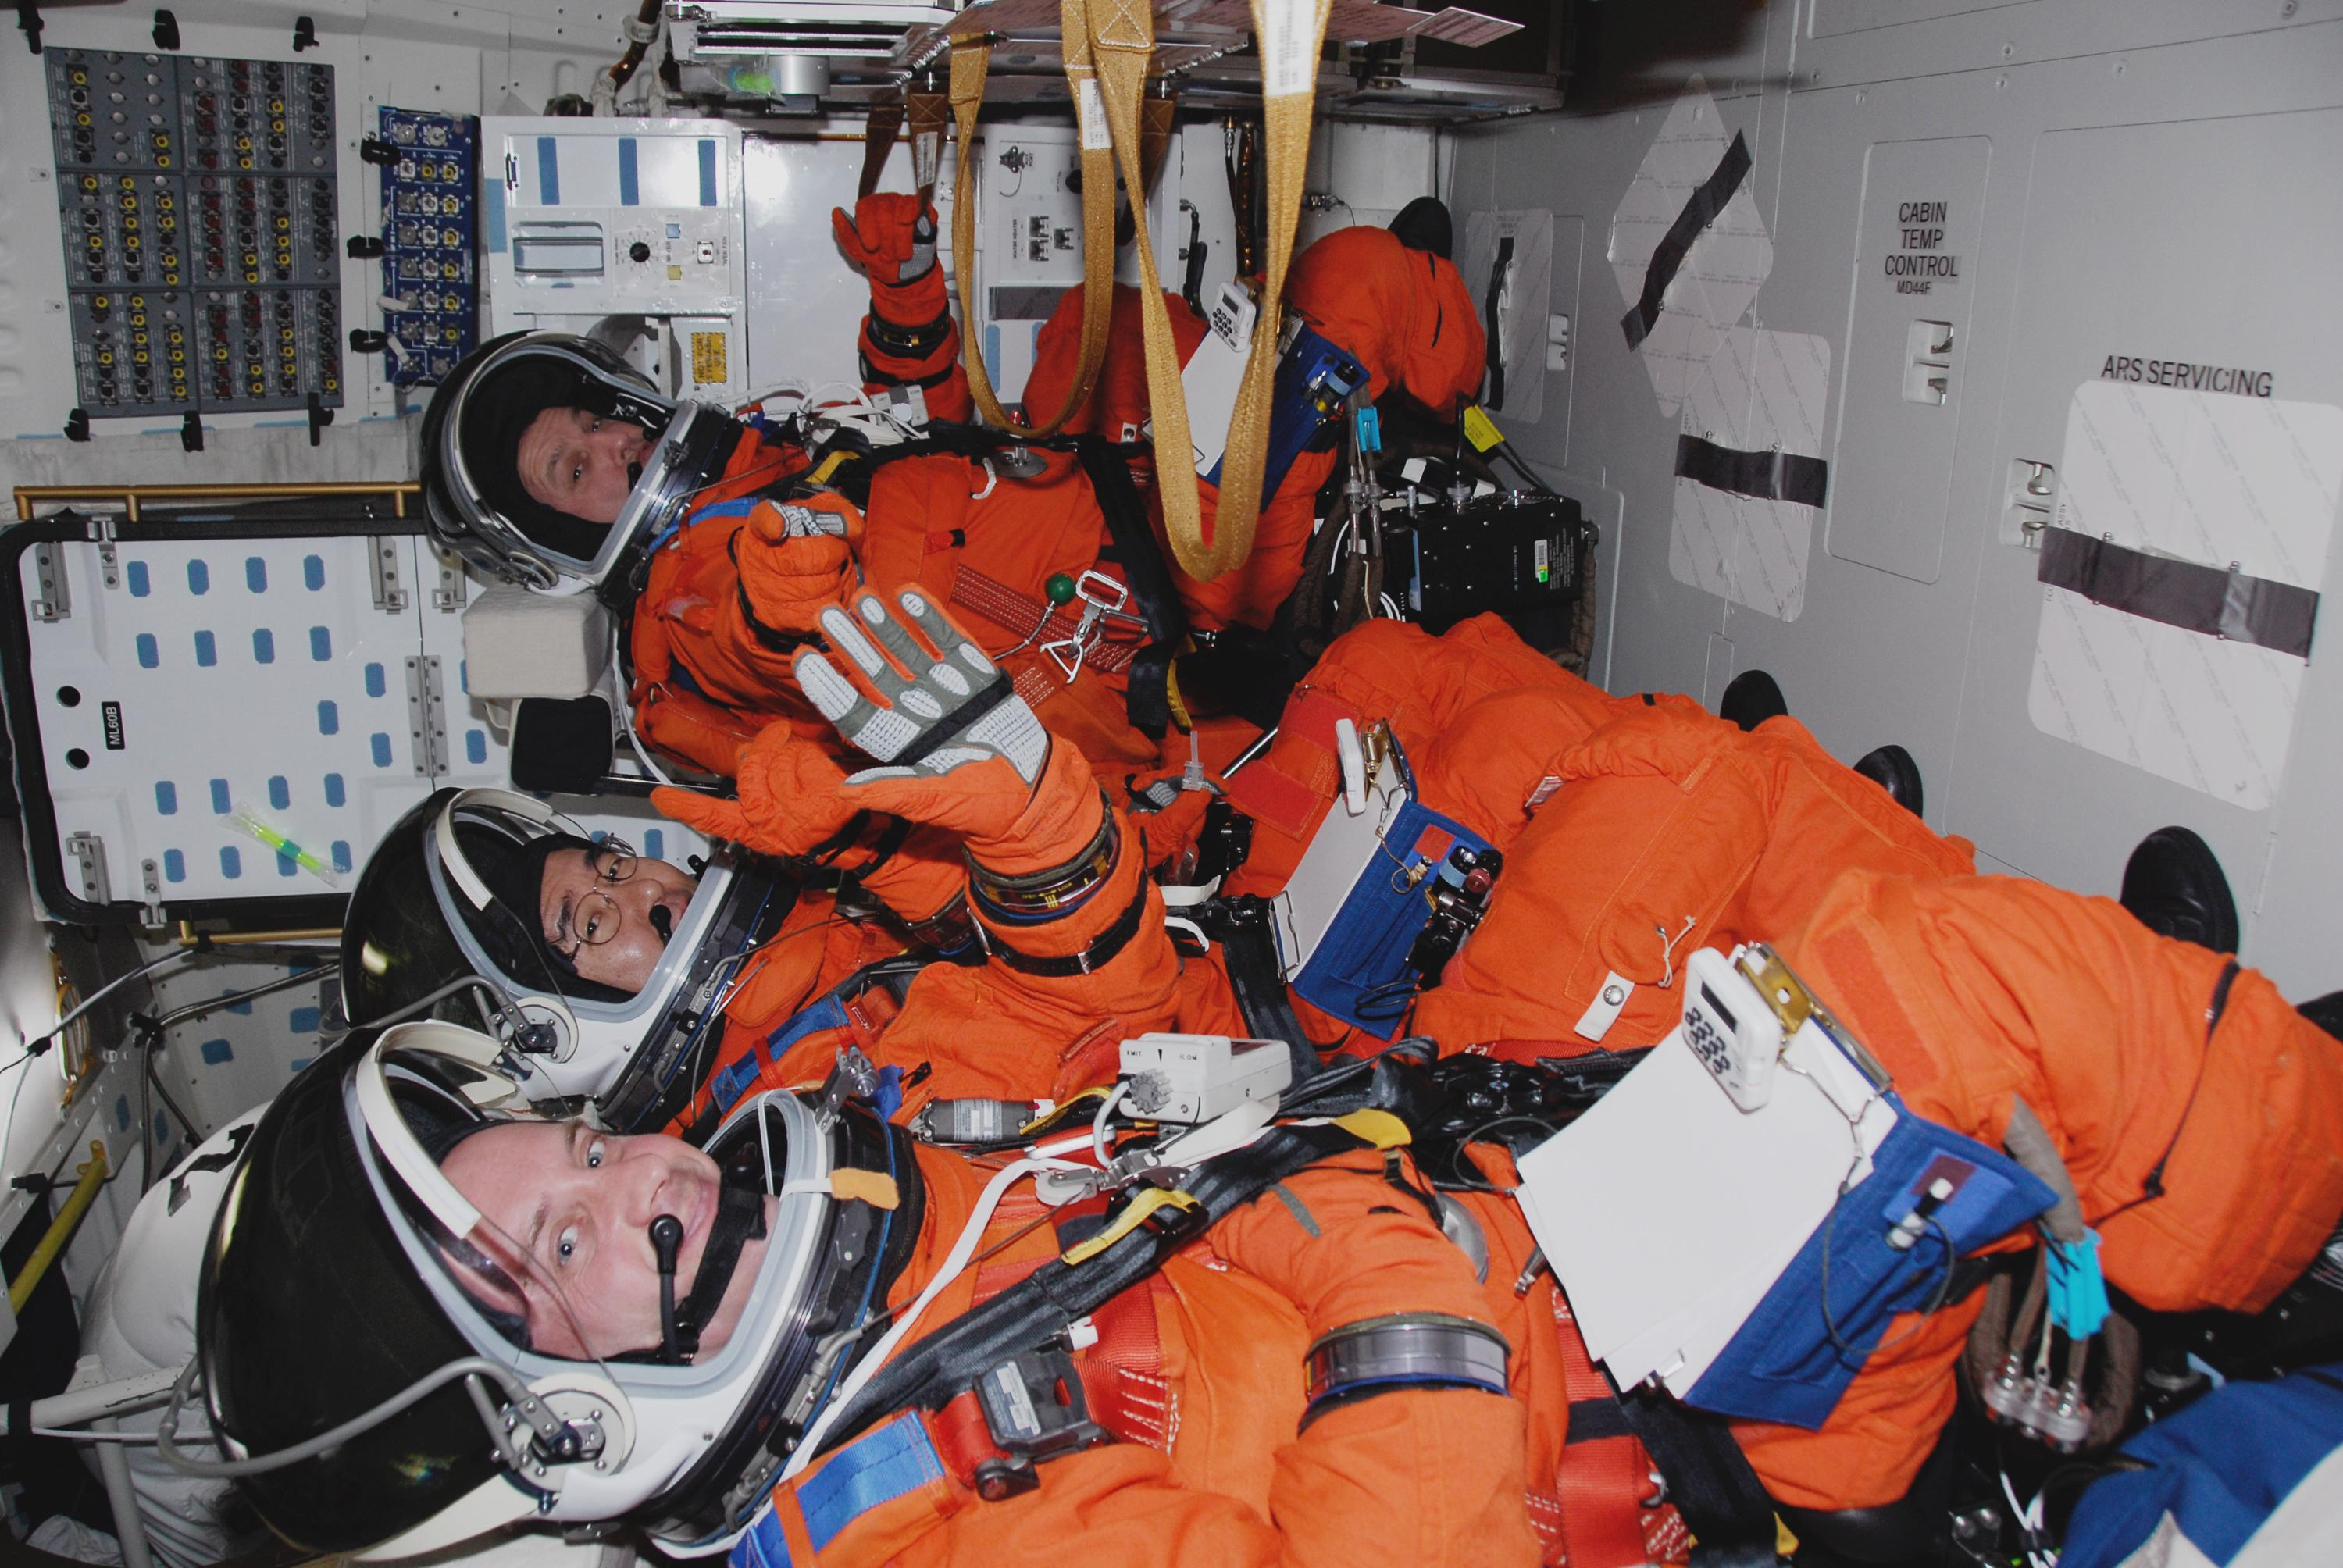 ZERO GRAVITY ASTRONAUT POSITION CREATED BY NASA